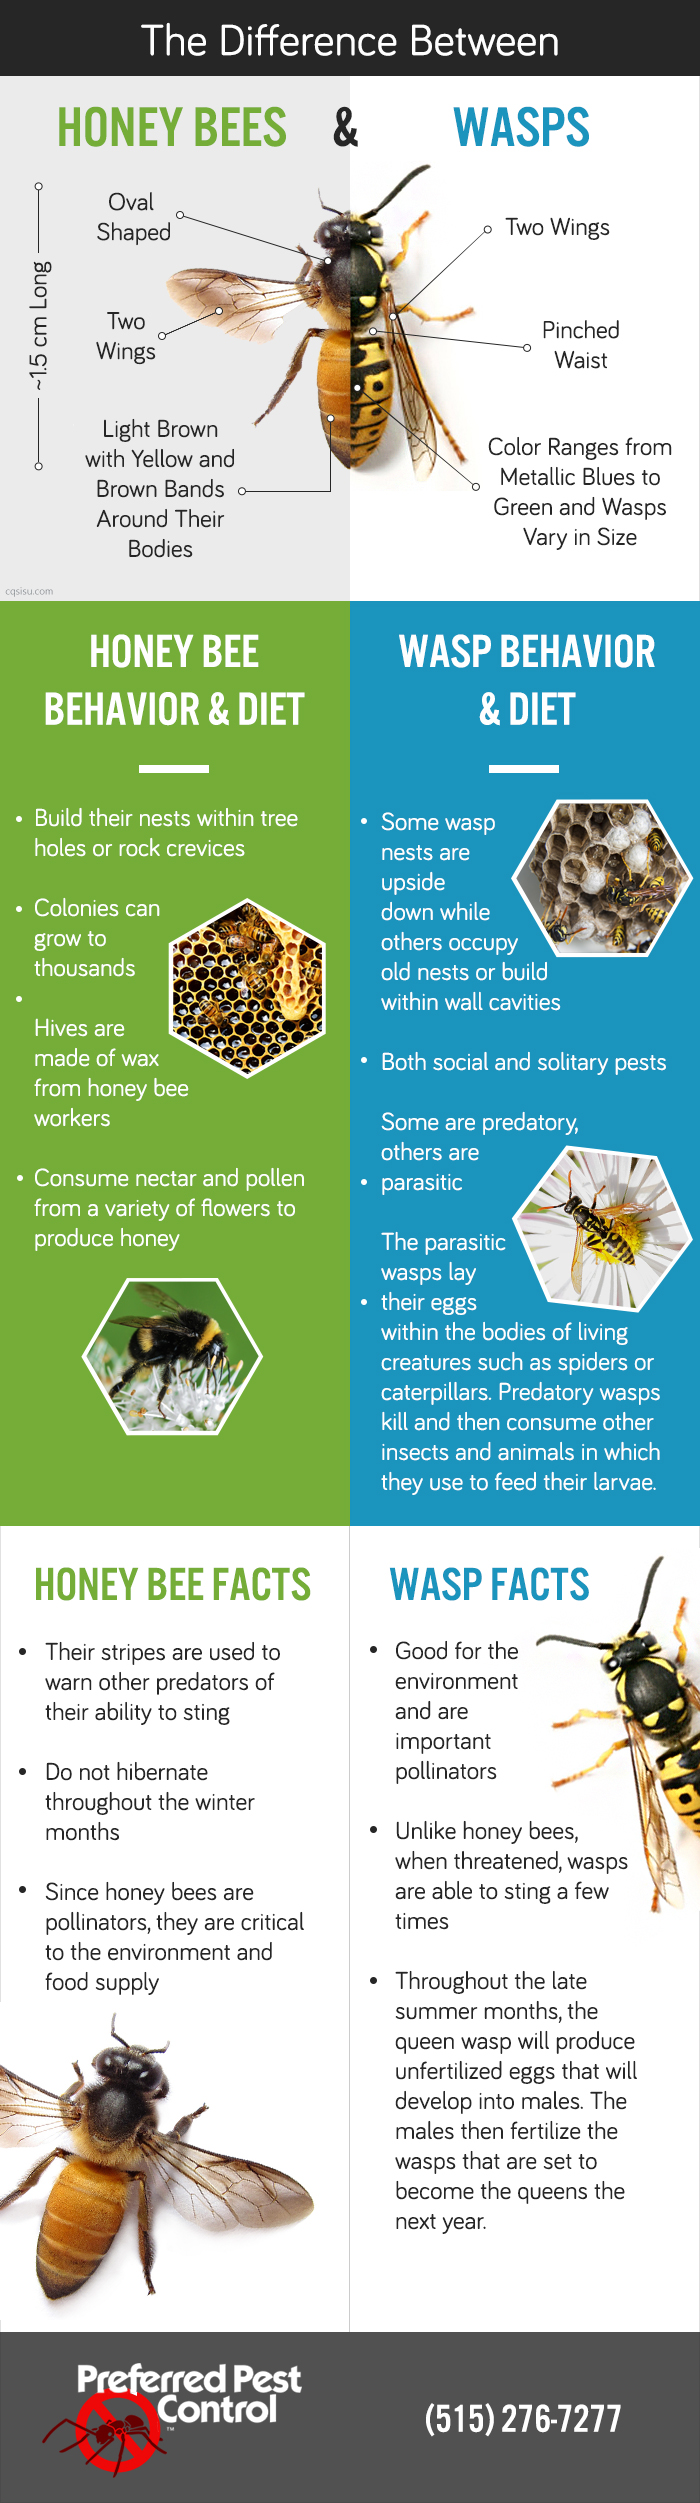 The Difference Between Honey Bees and Wasps